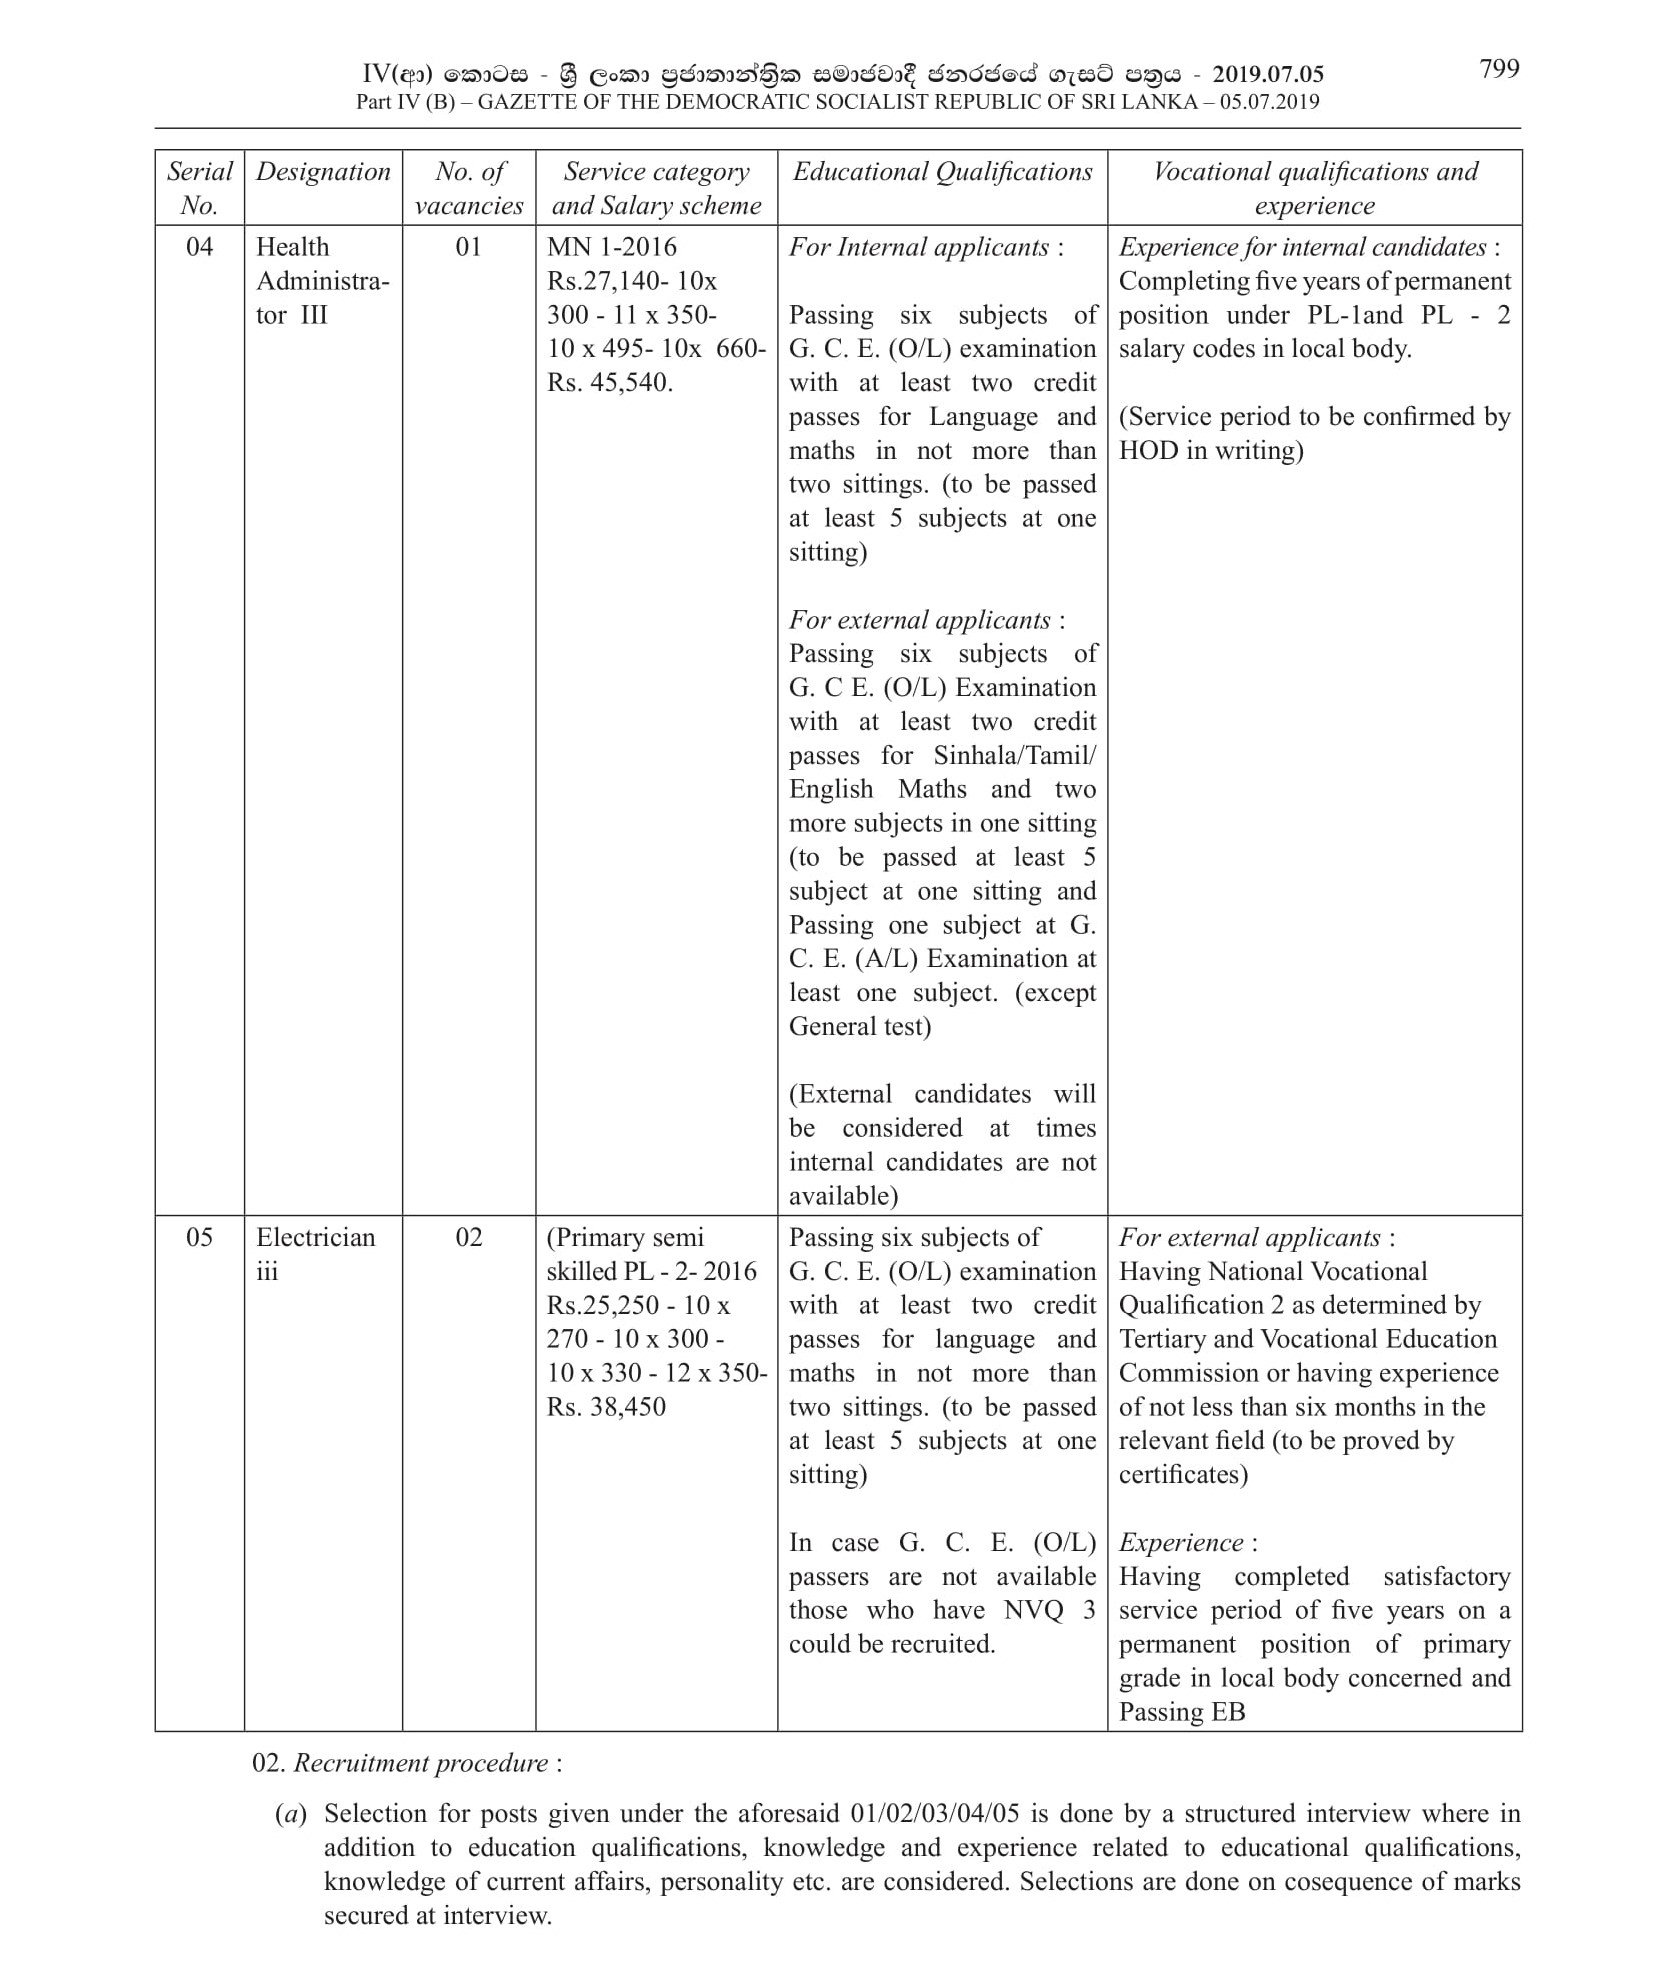 Health Administrator, Sanitary Labourer, Work/Field Labourer